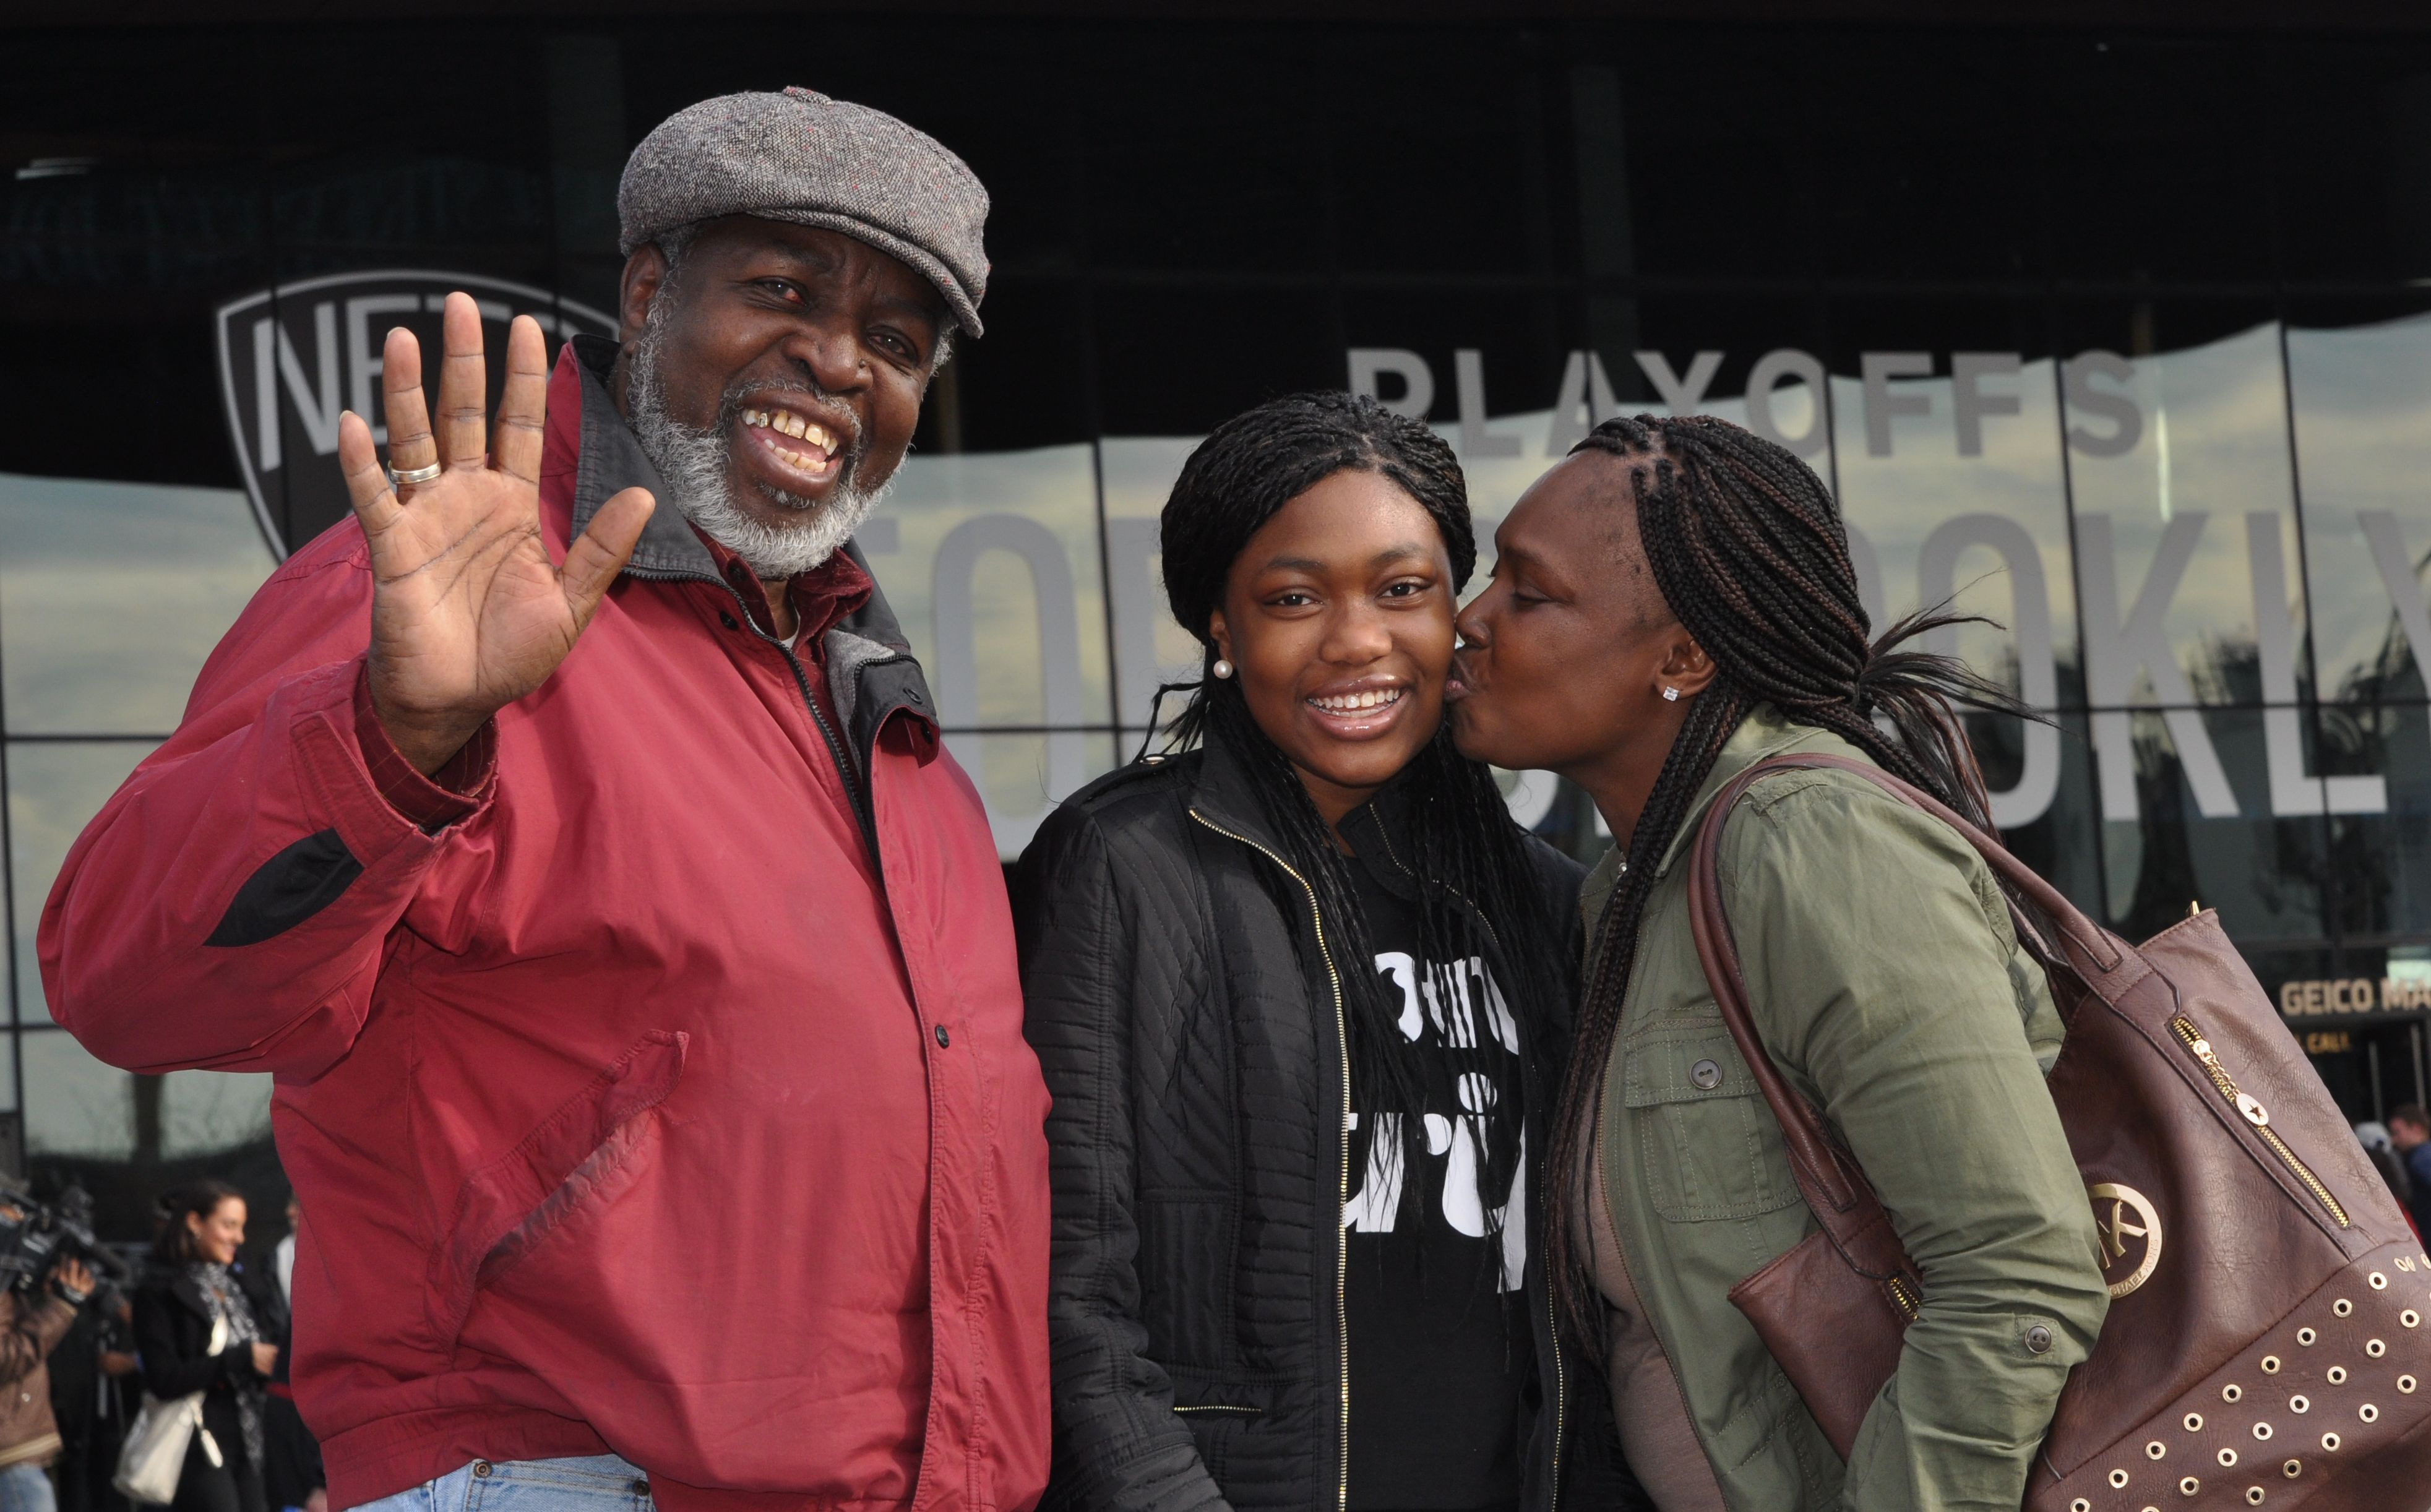 Jamay (palliative care pediatric patient), Grandad and mom enjoy game 3 of Nets vs Raptors playoff game